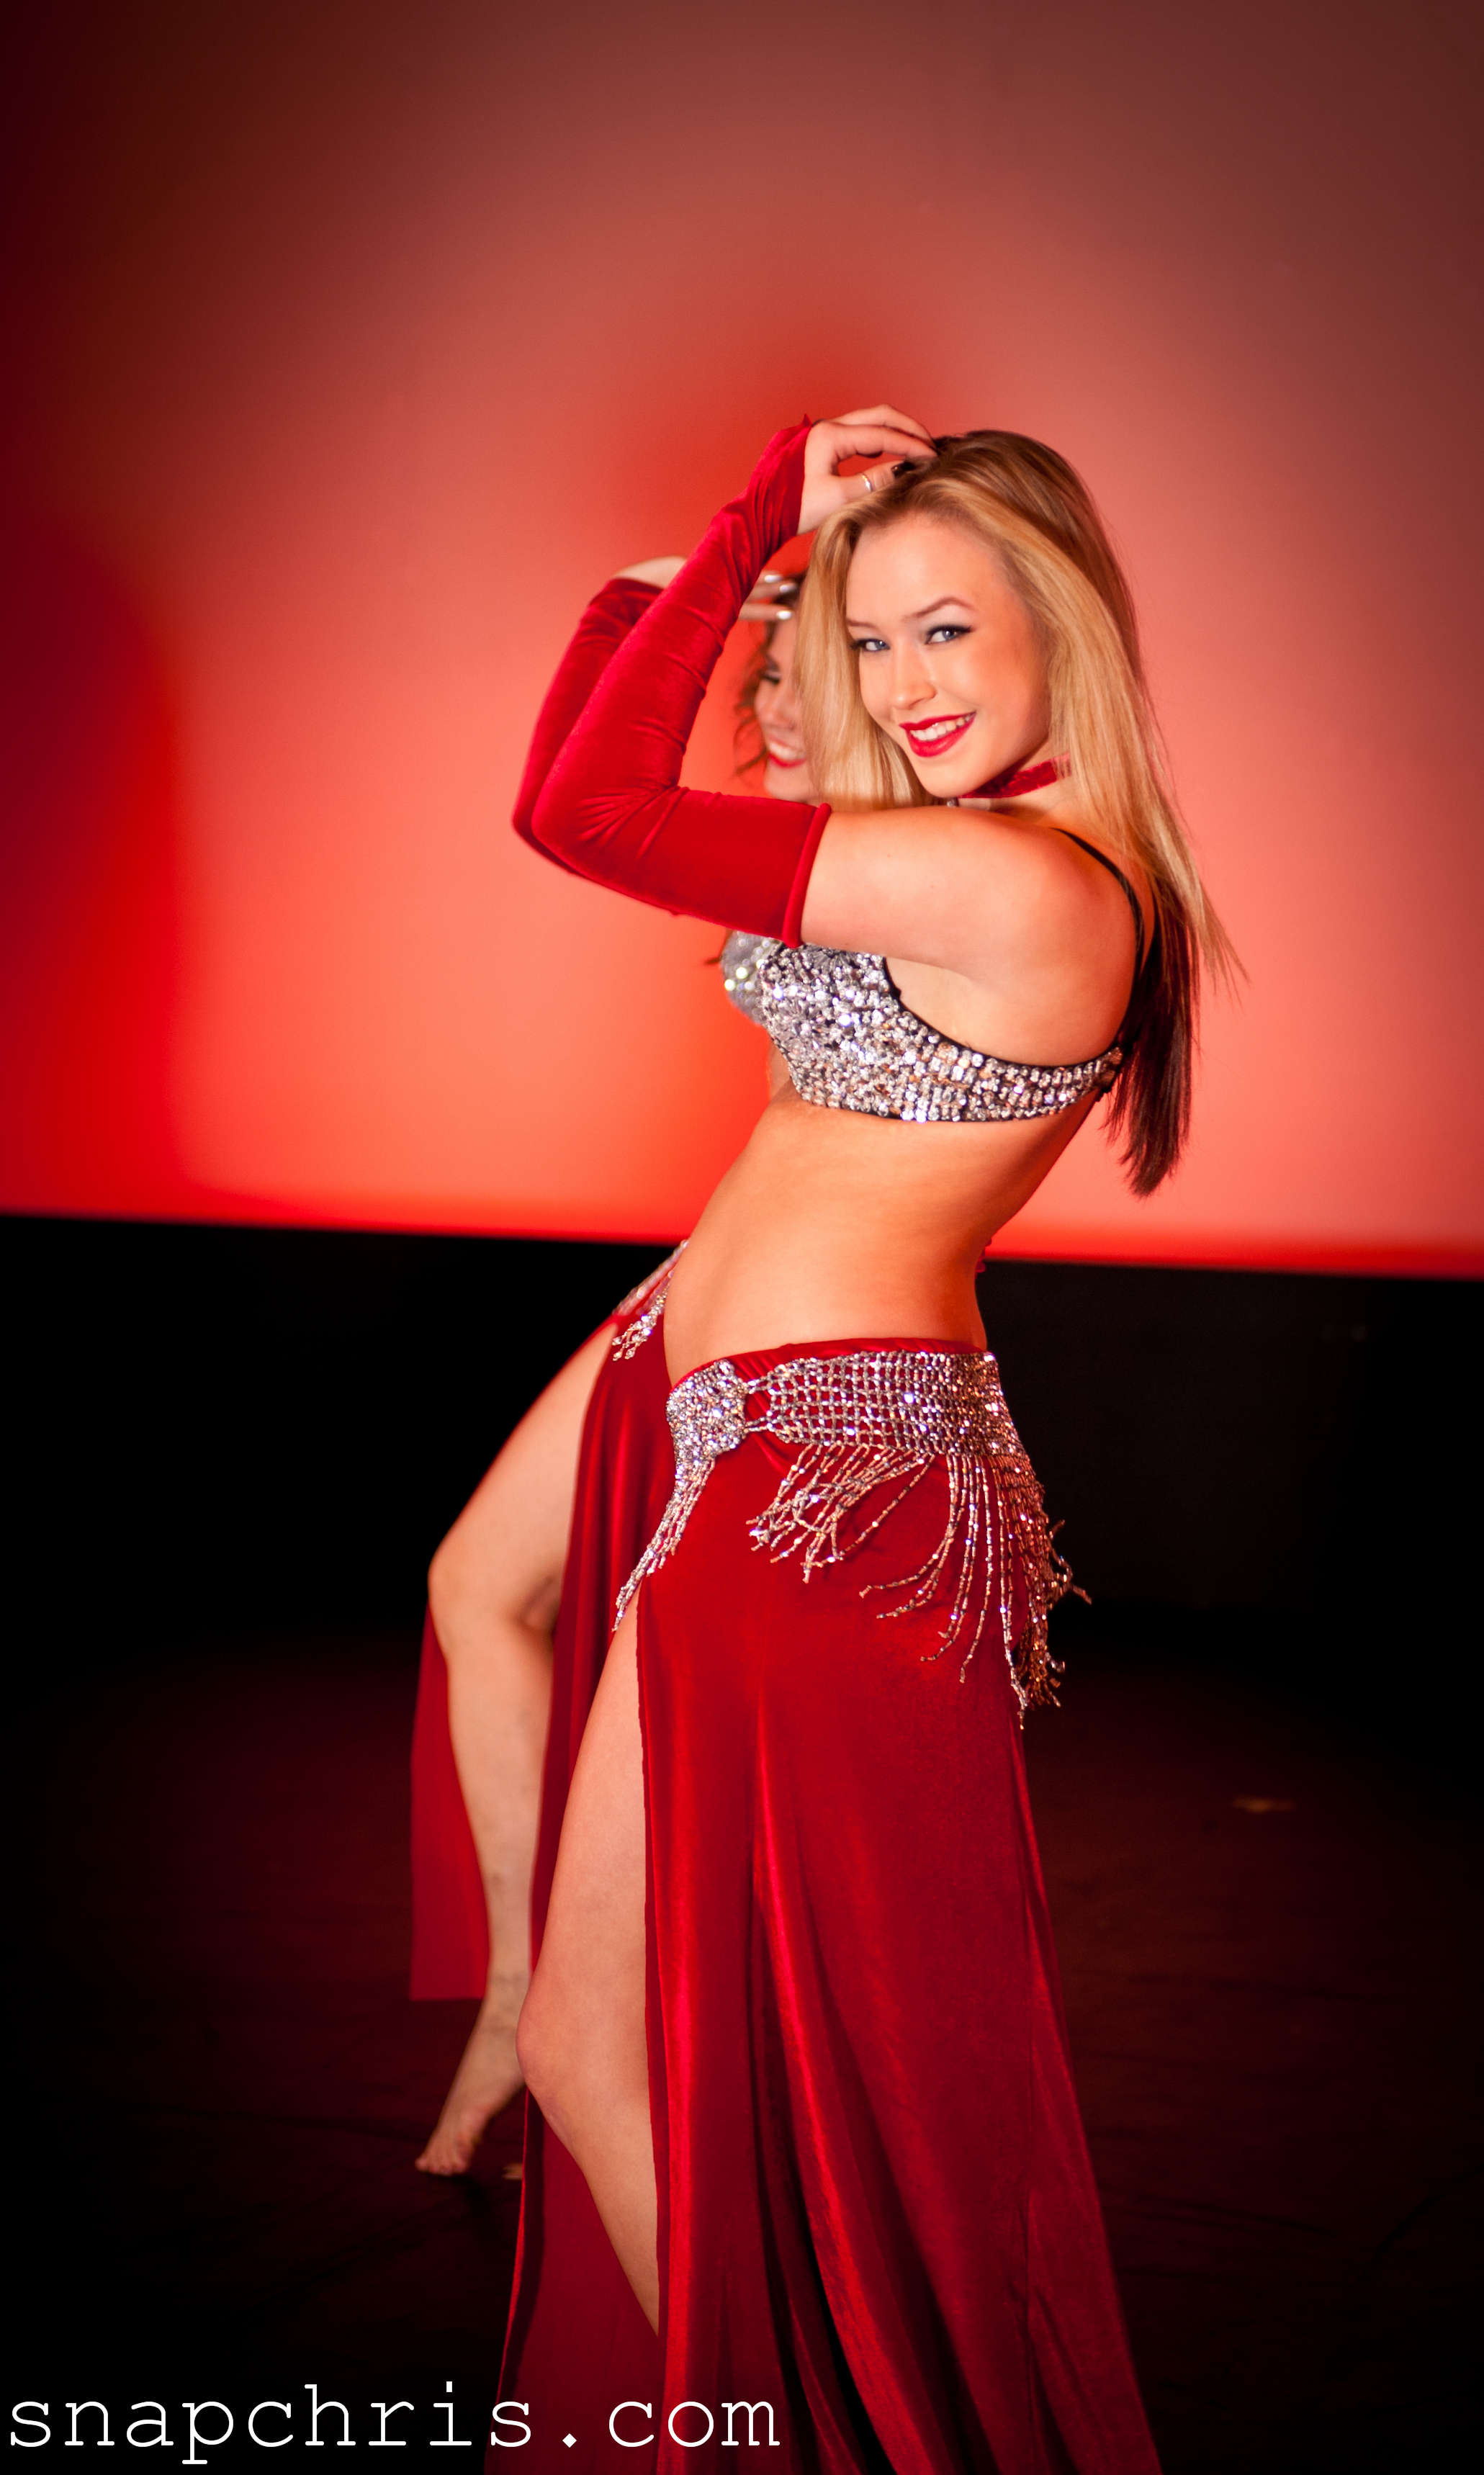 File:Belly dancer girl.jpg - Wikimedia Commons